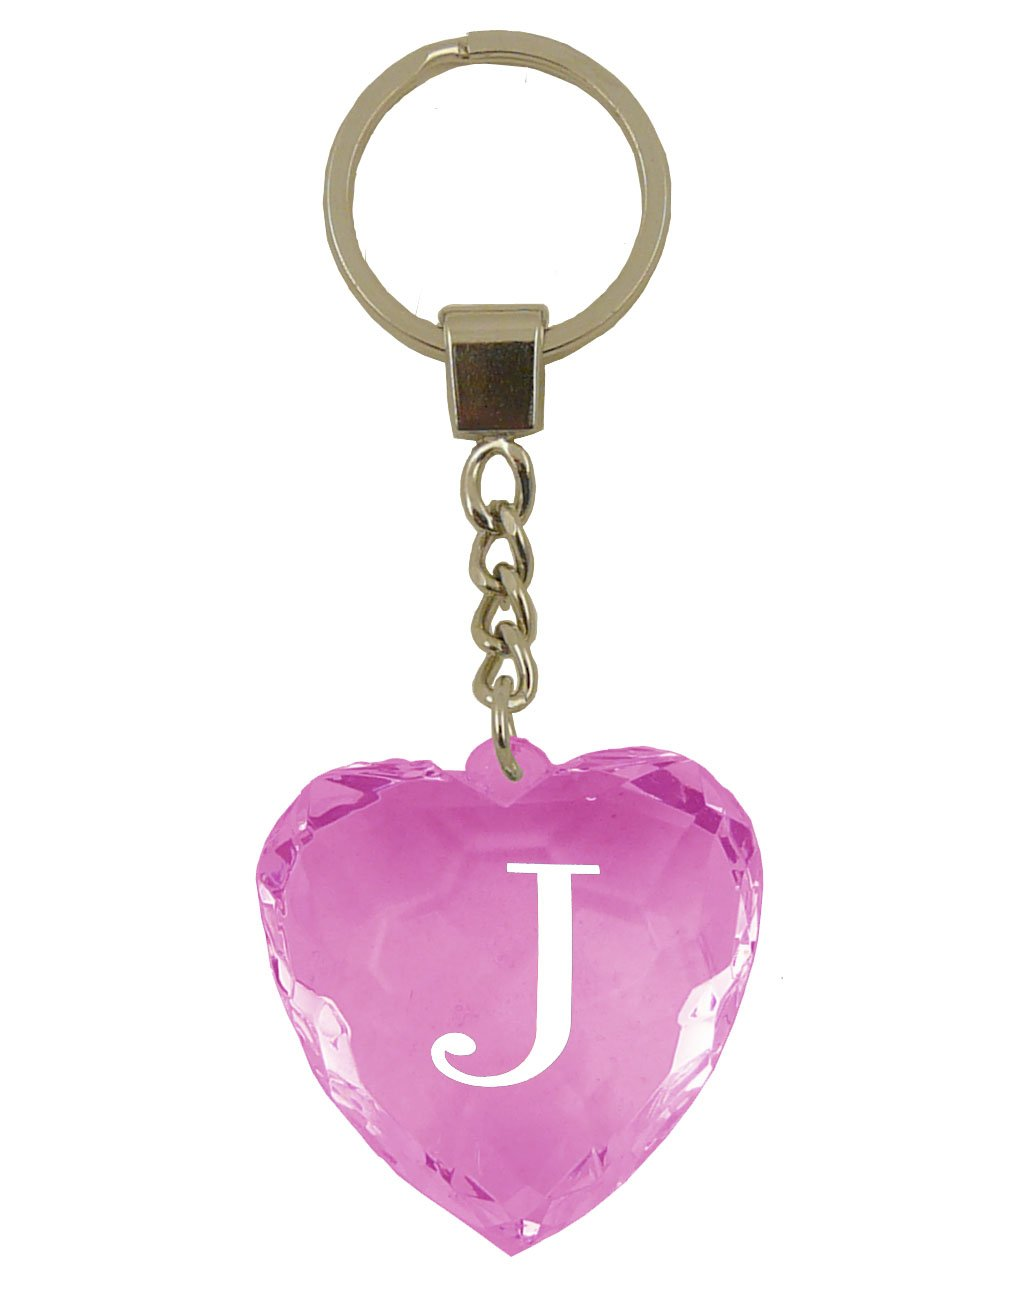 Initial Letter J Heart Shaped Keyring - Pink: Amazon.co.uk: Toys & Games